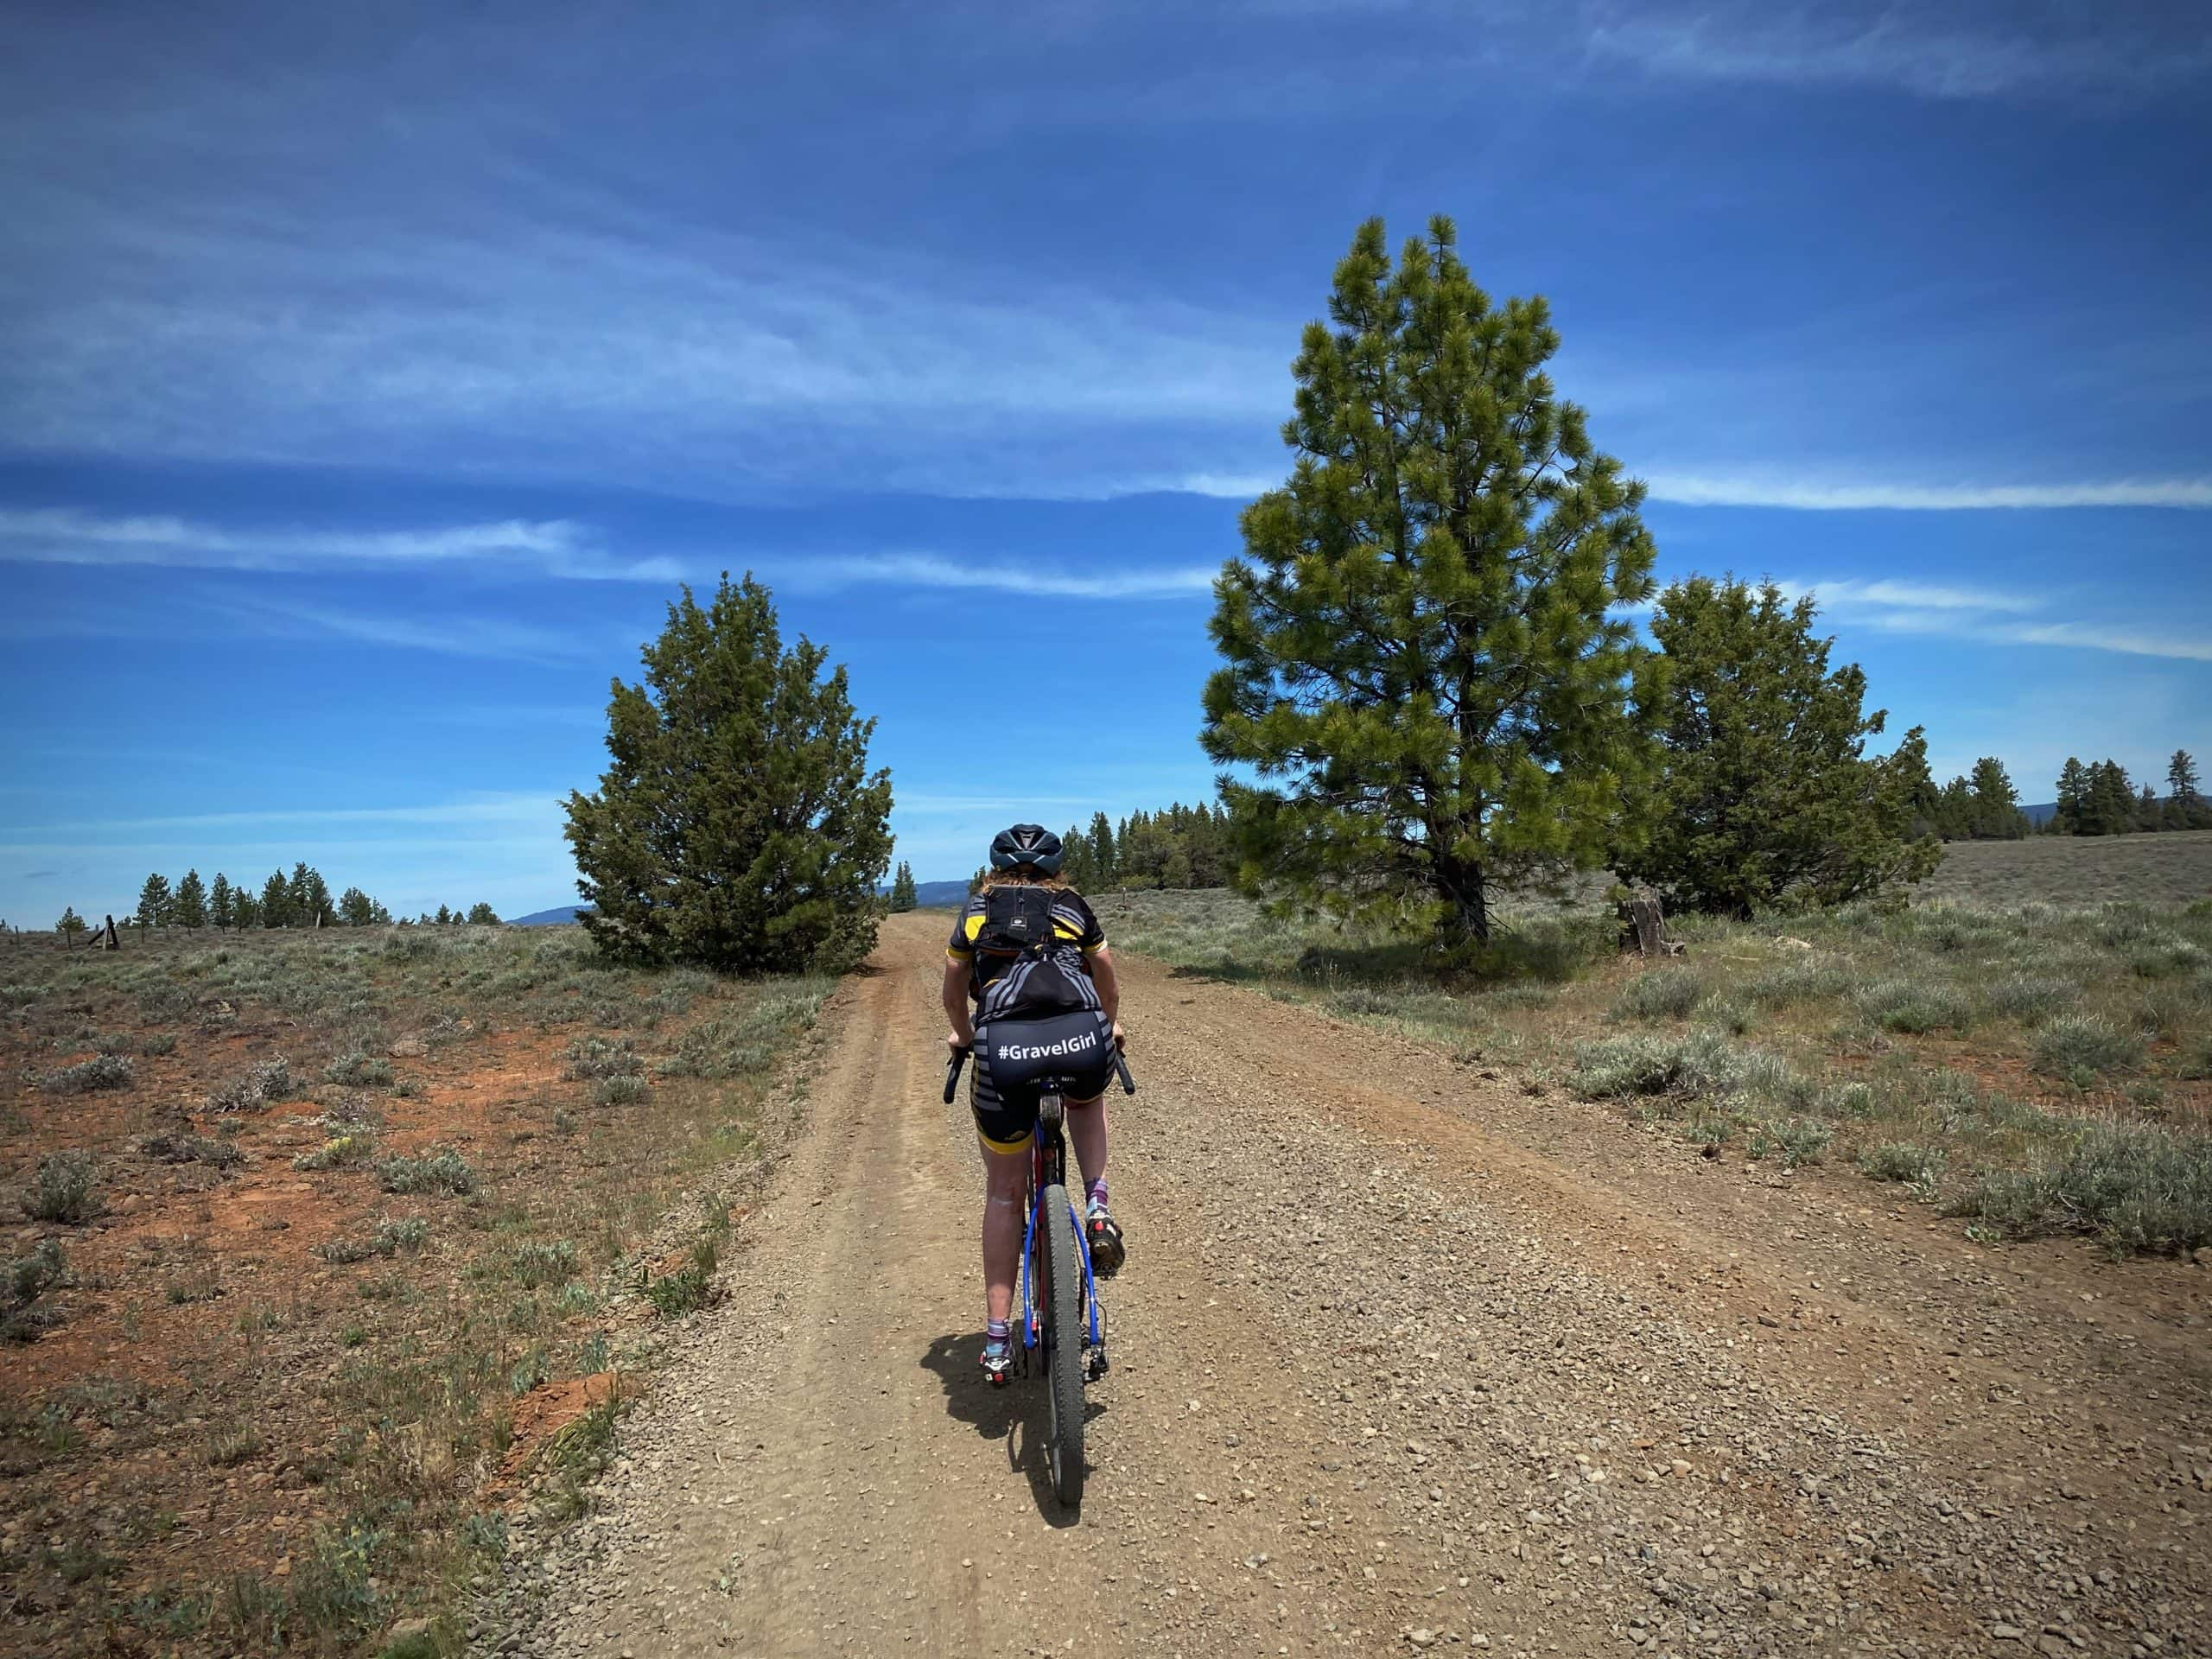 Arid rangelands in the Ochoco National forest with a bike rider on gravel road.